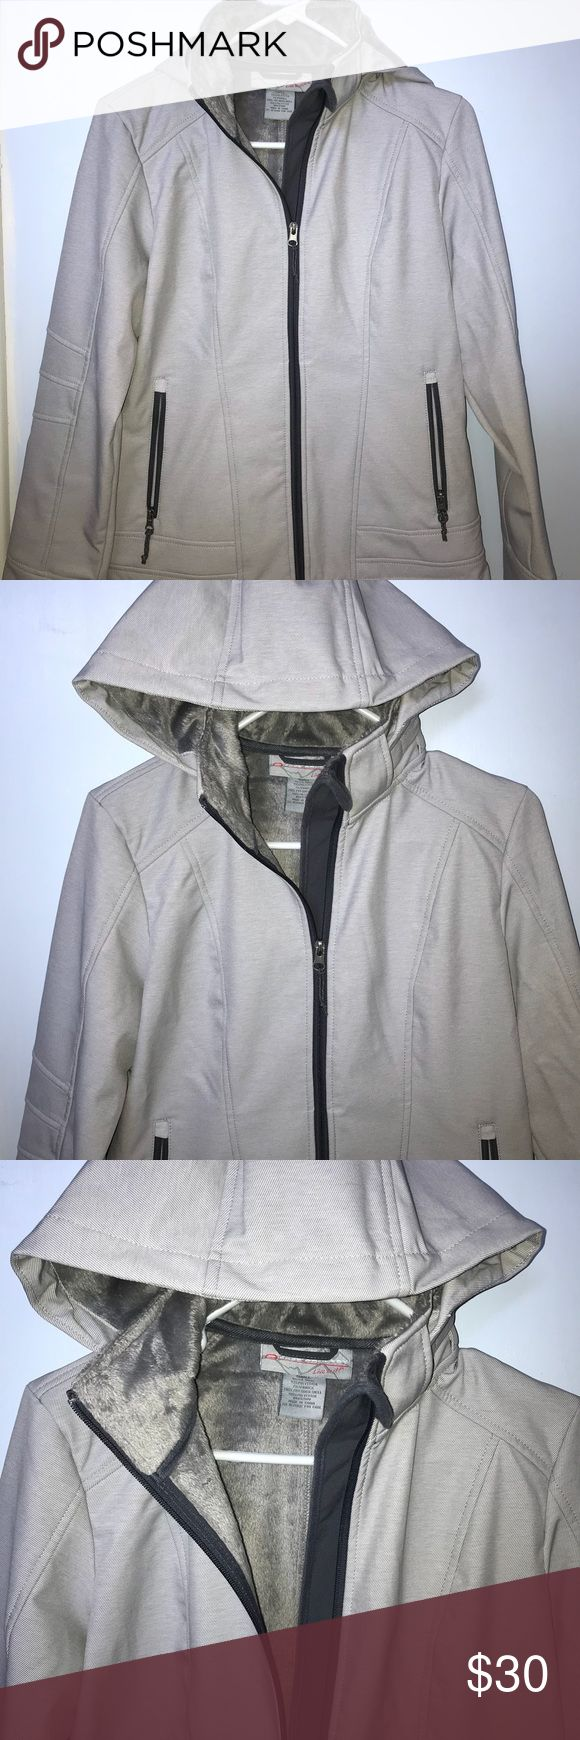 Fleece-lined Athletic Jacket Silver/grey cold weather jacket, perfect for outdoor activities. Fully lined, including hood. Never worn. Free Country Jackets & Coats